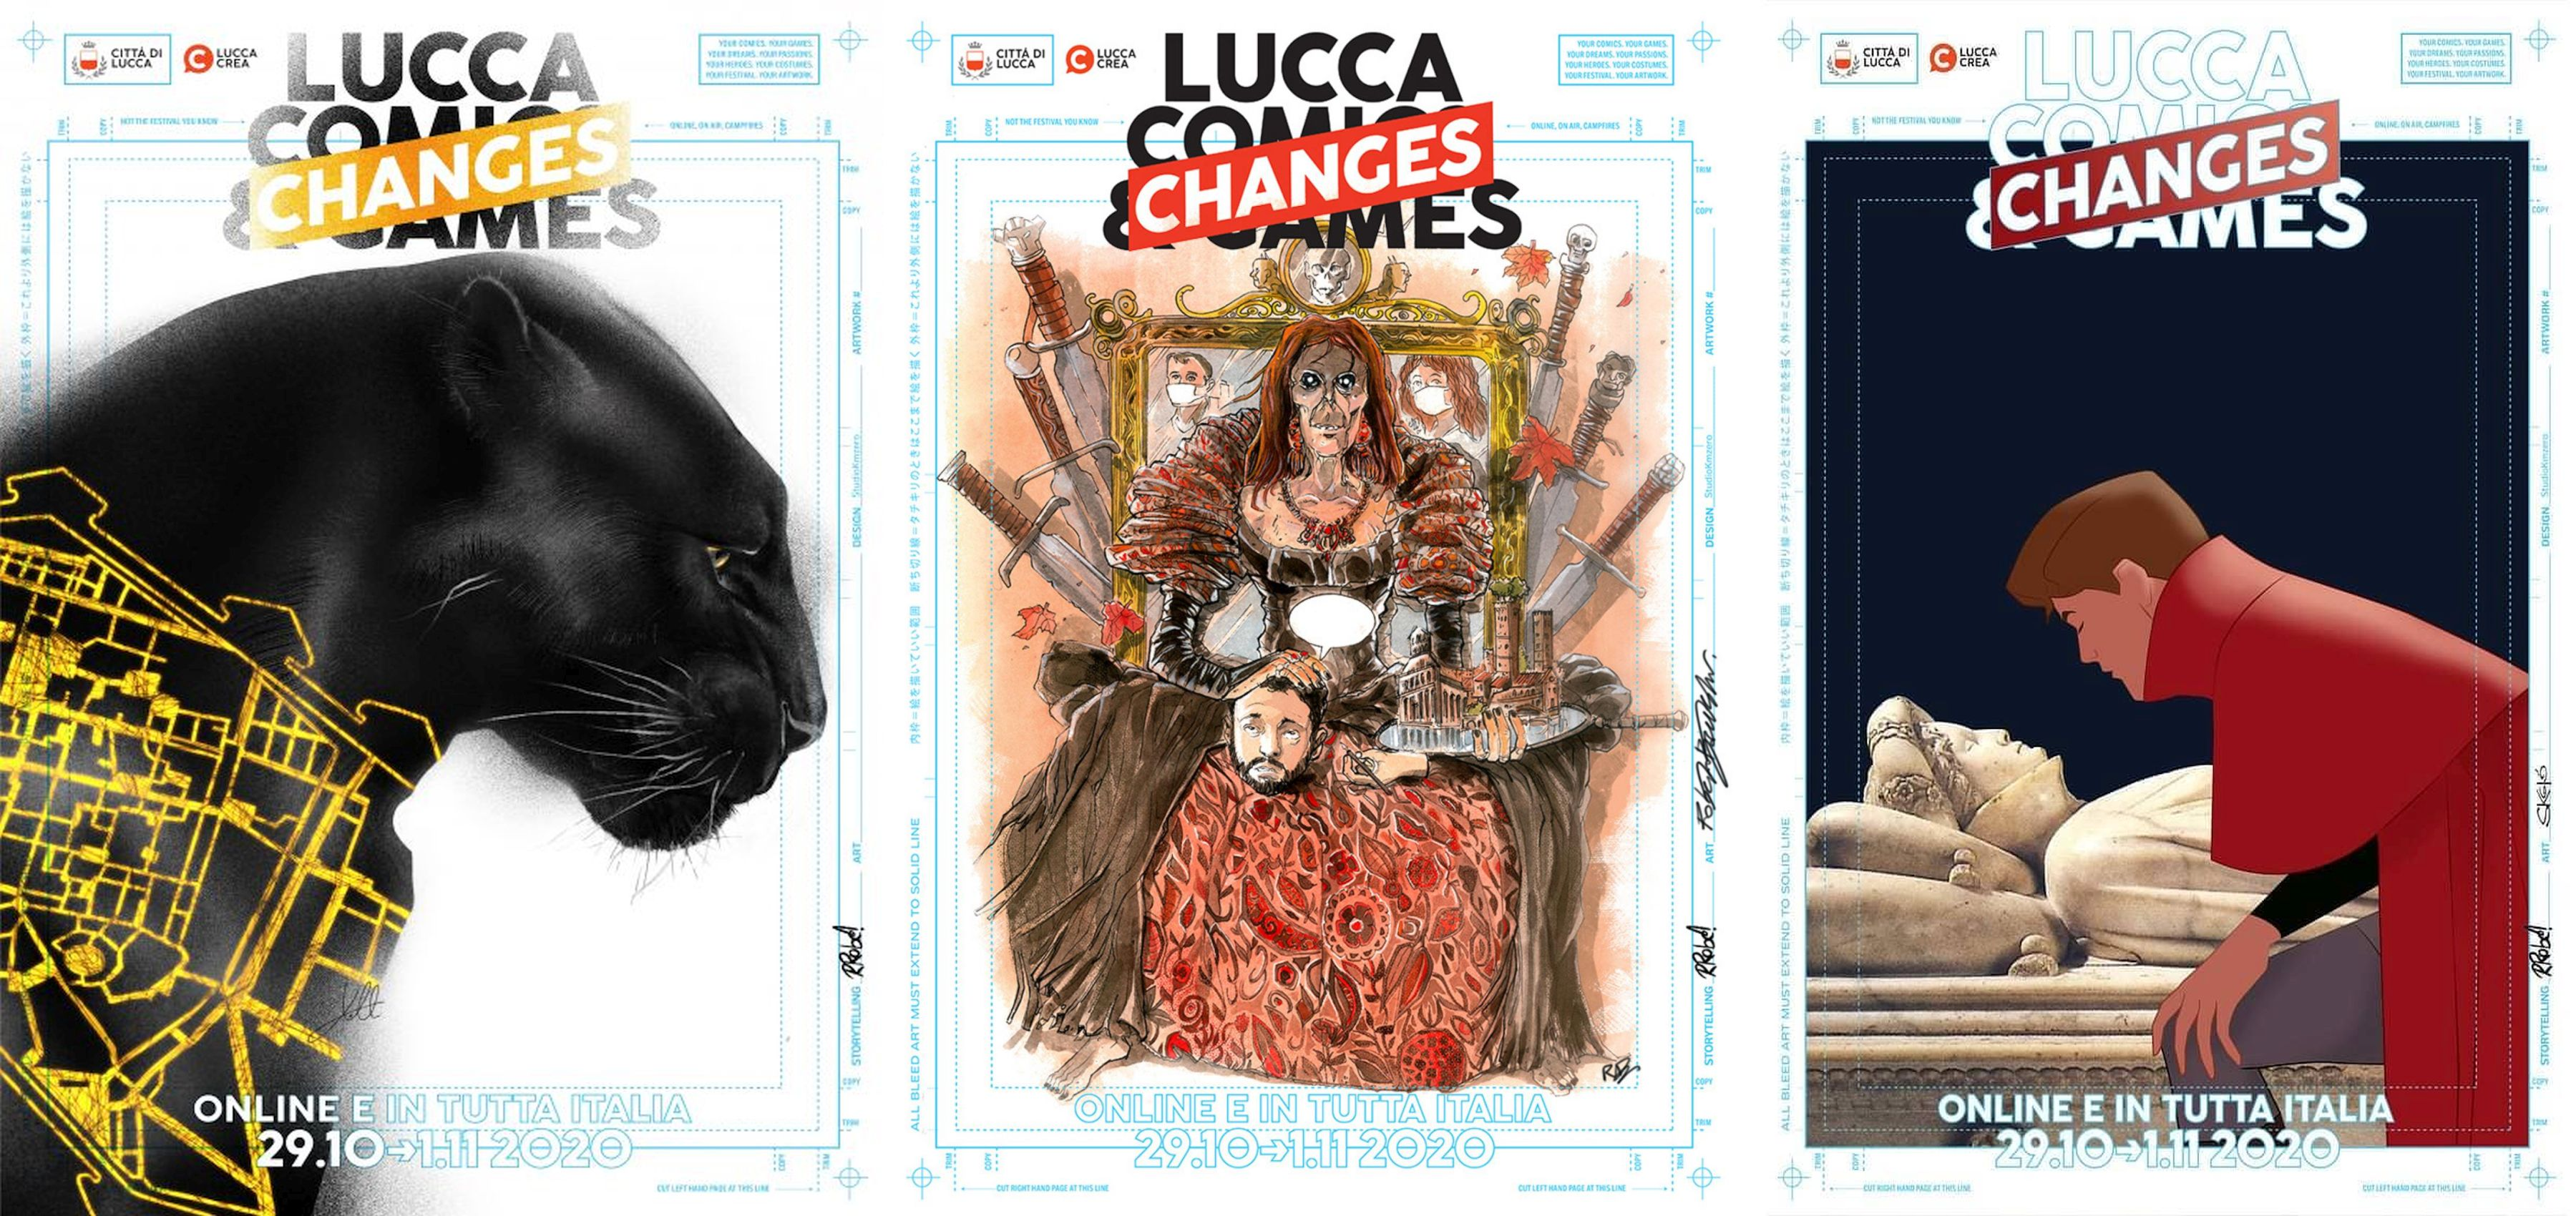 lucca comics and games poster